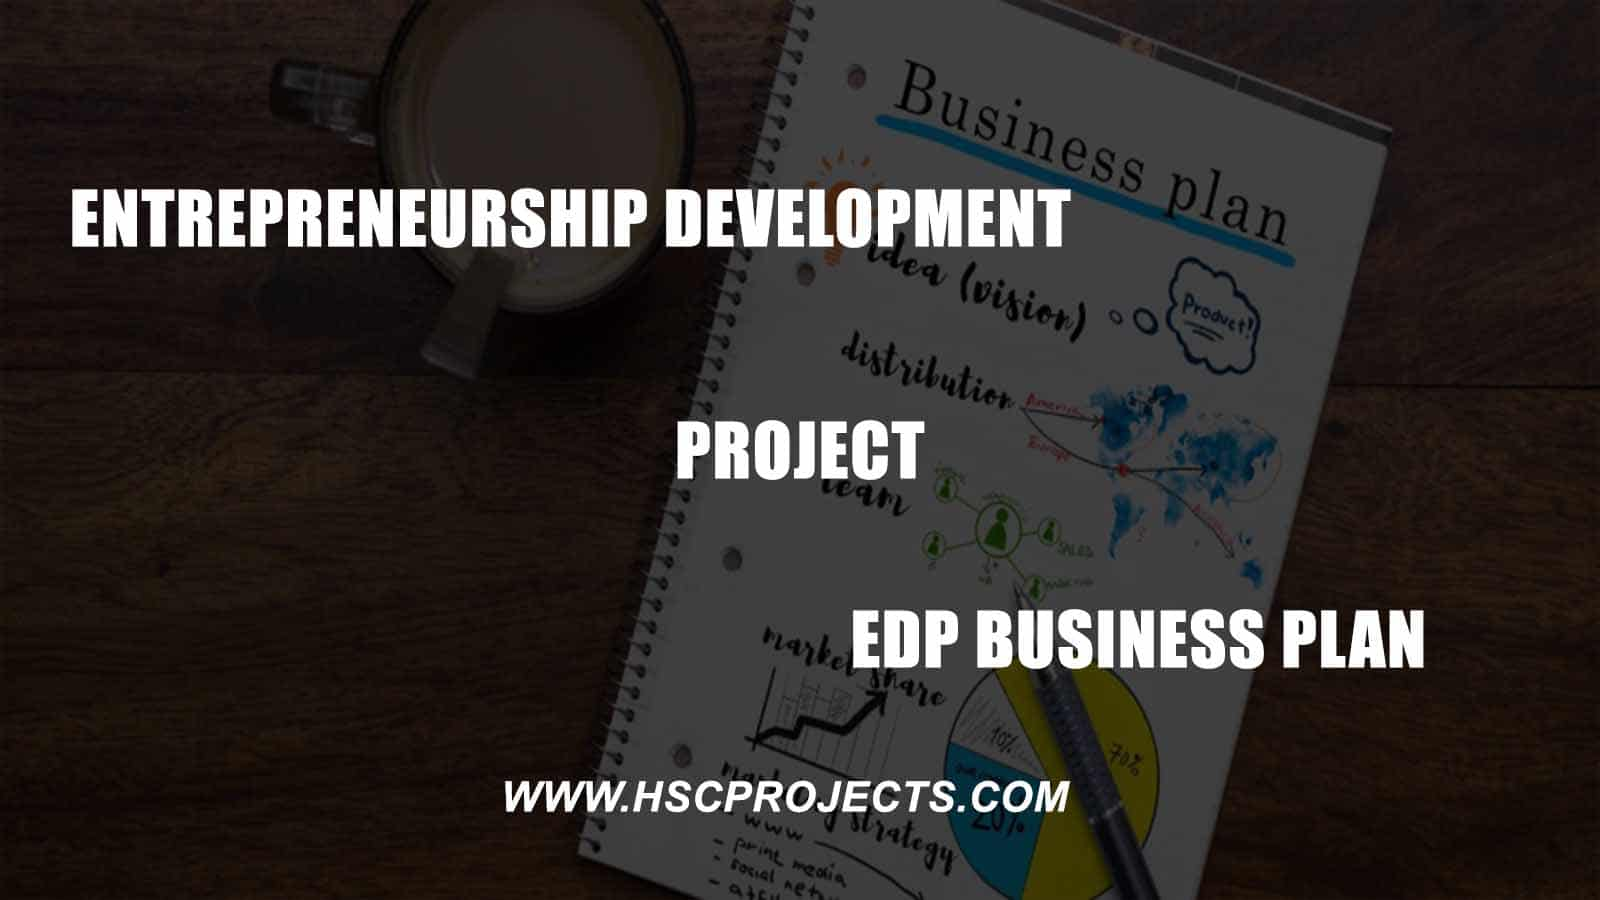 , Entrepreneurship Development Project EDP Business Plan, HSC Projects, HSC Projects